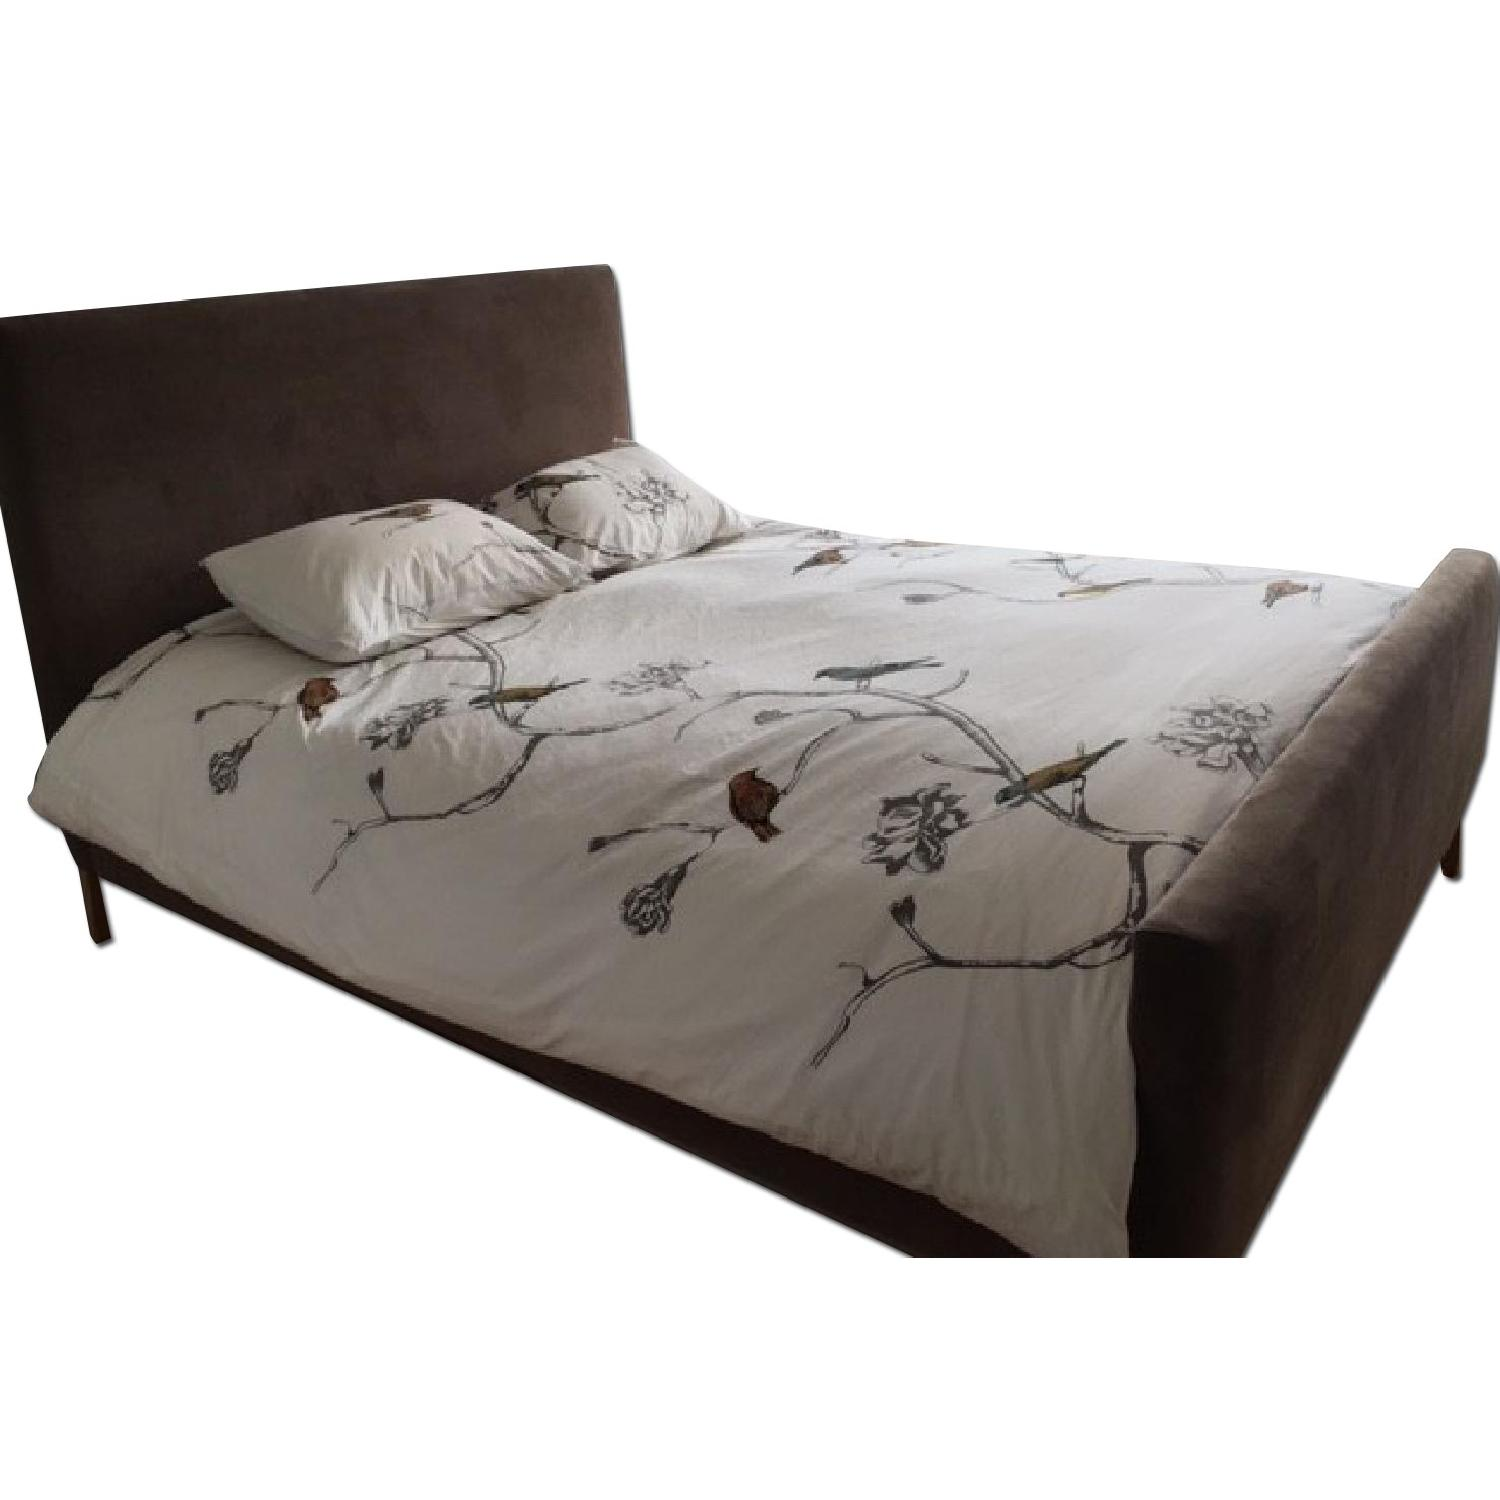 Room & Board Queen Size Bed Frame - image-0